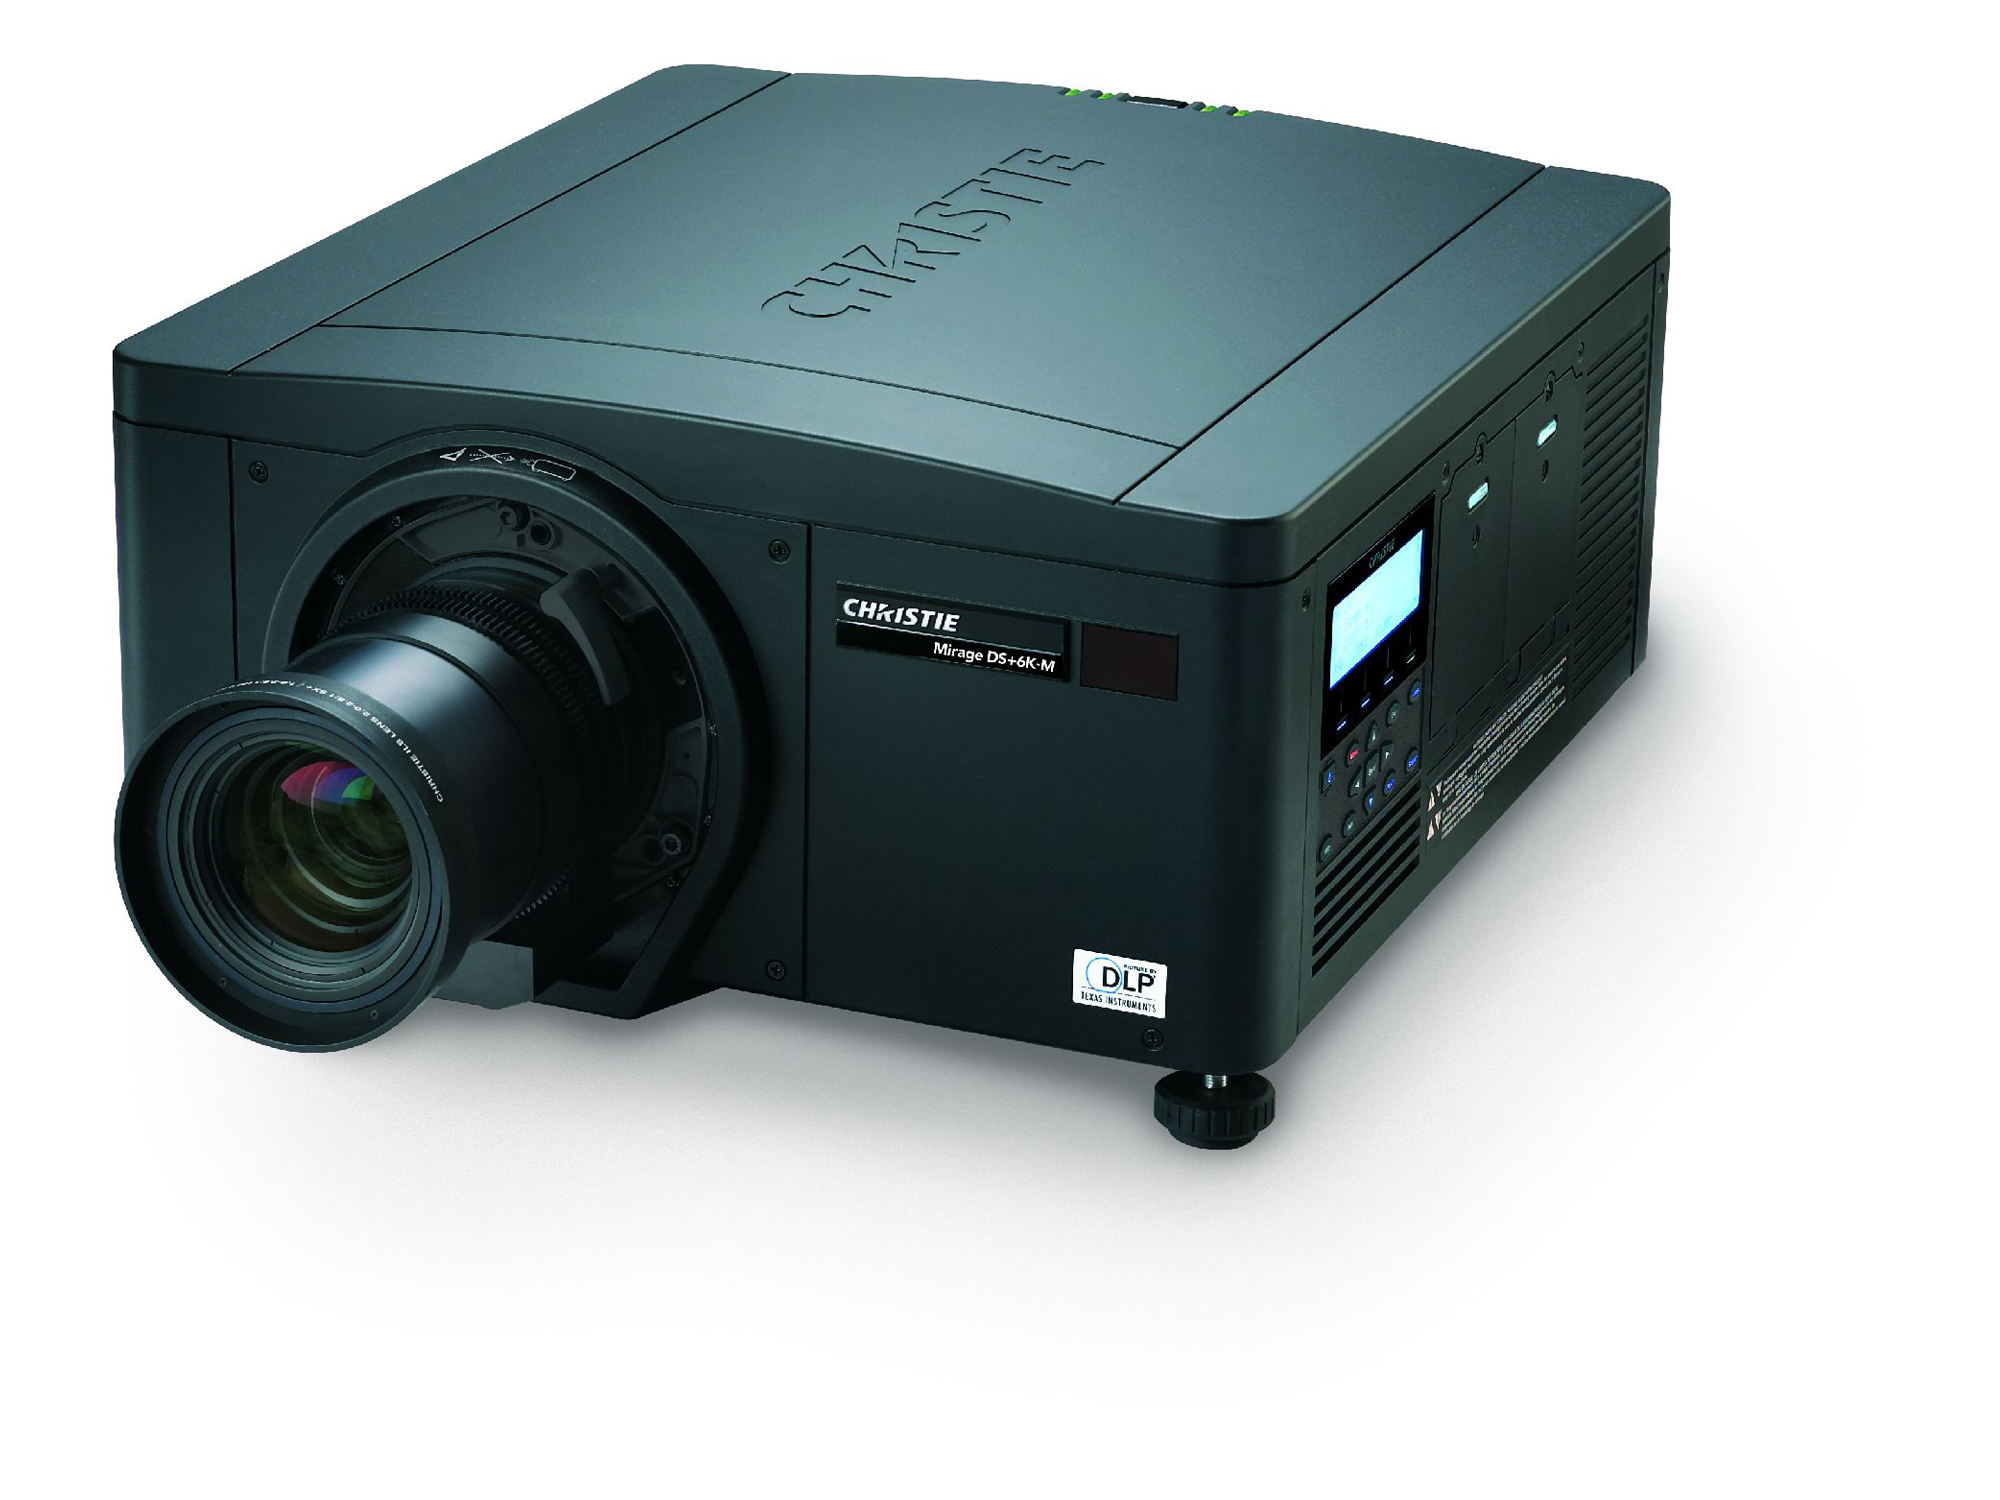 /globalassets/.catalog/products/images/mirage-ds6k-m/gallery/mirage-ds6k-m-digital-projector-highrightpr.jpg